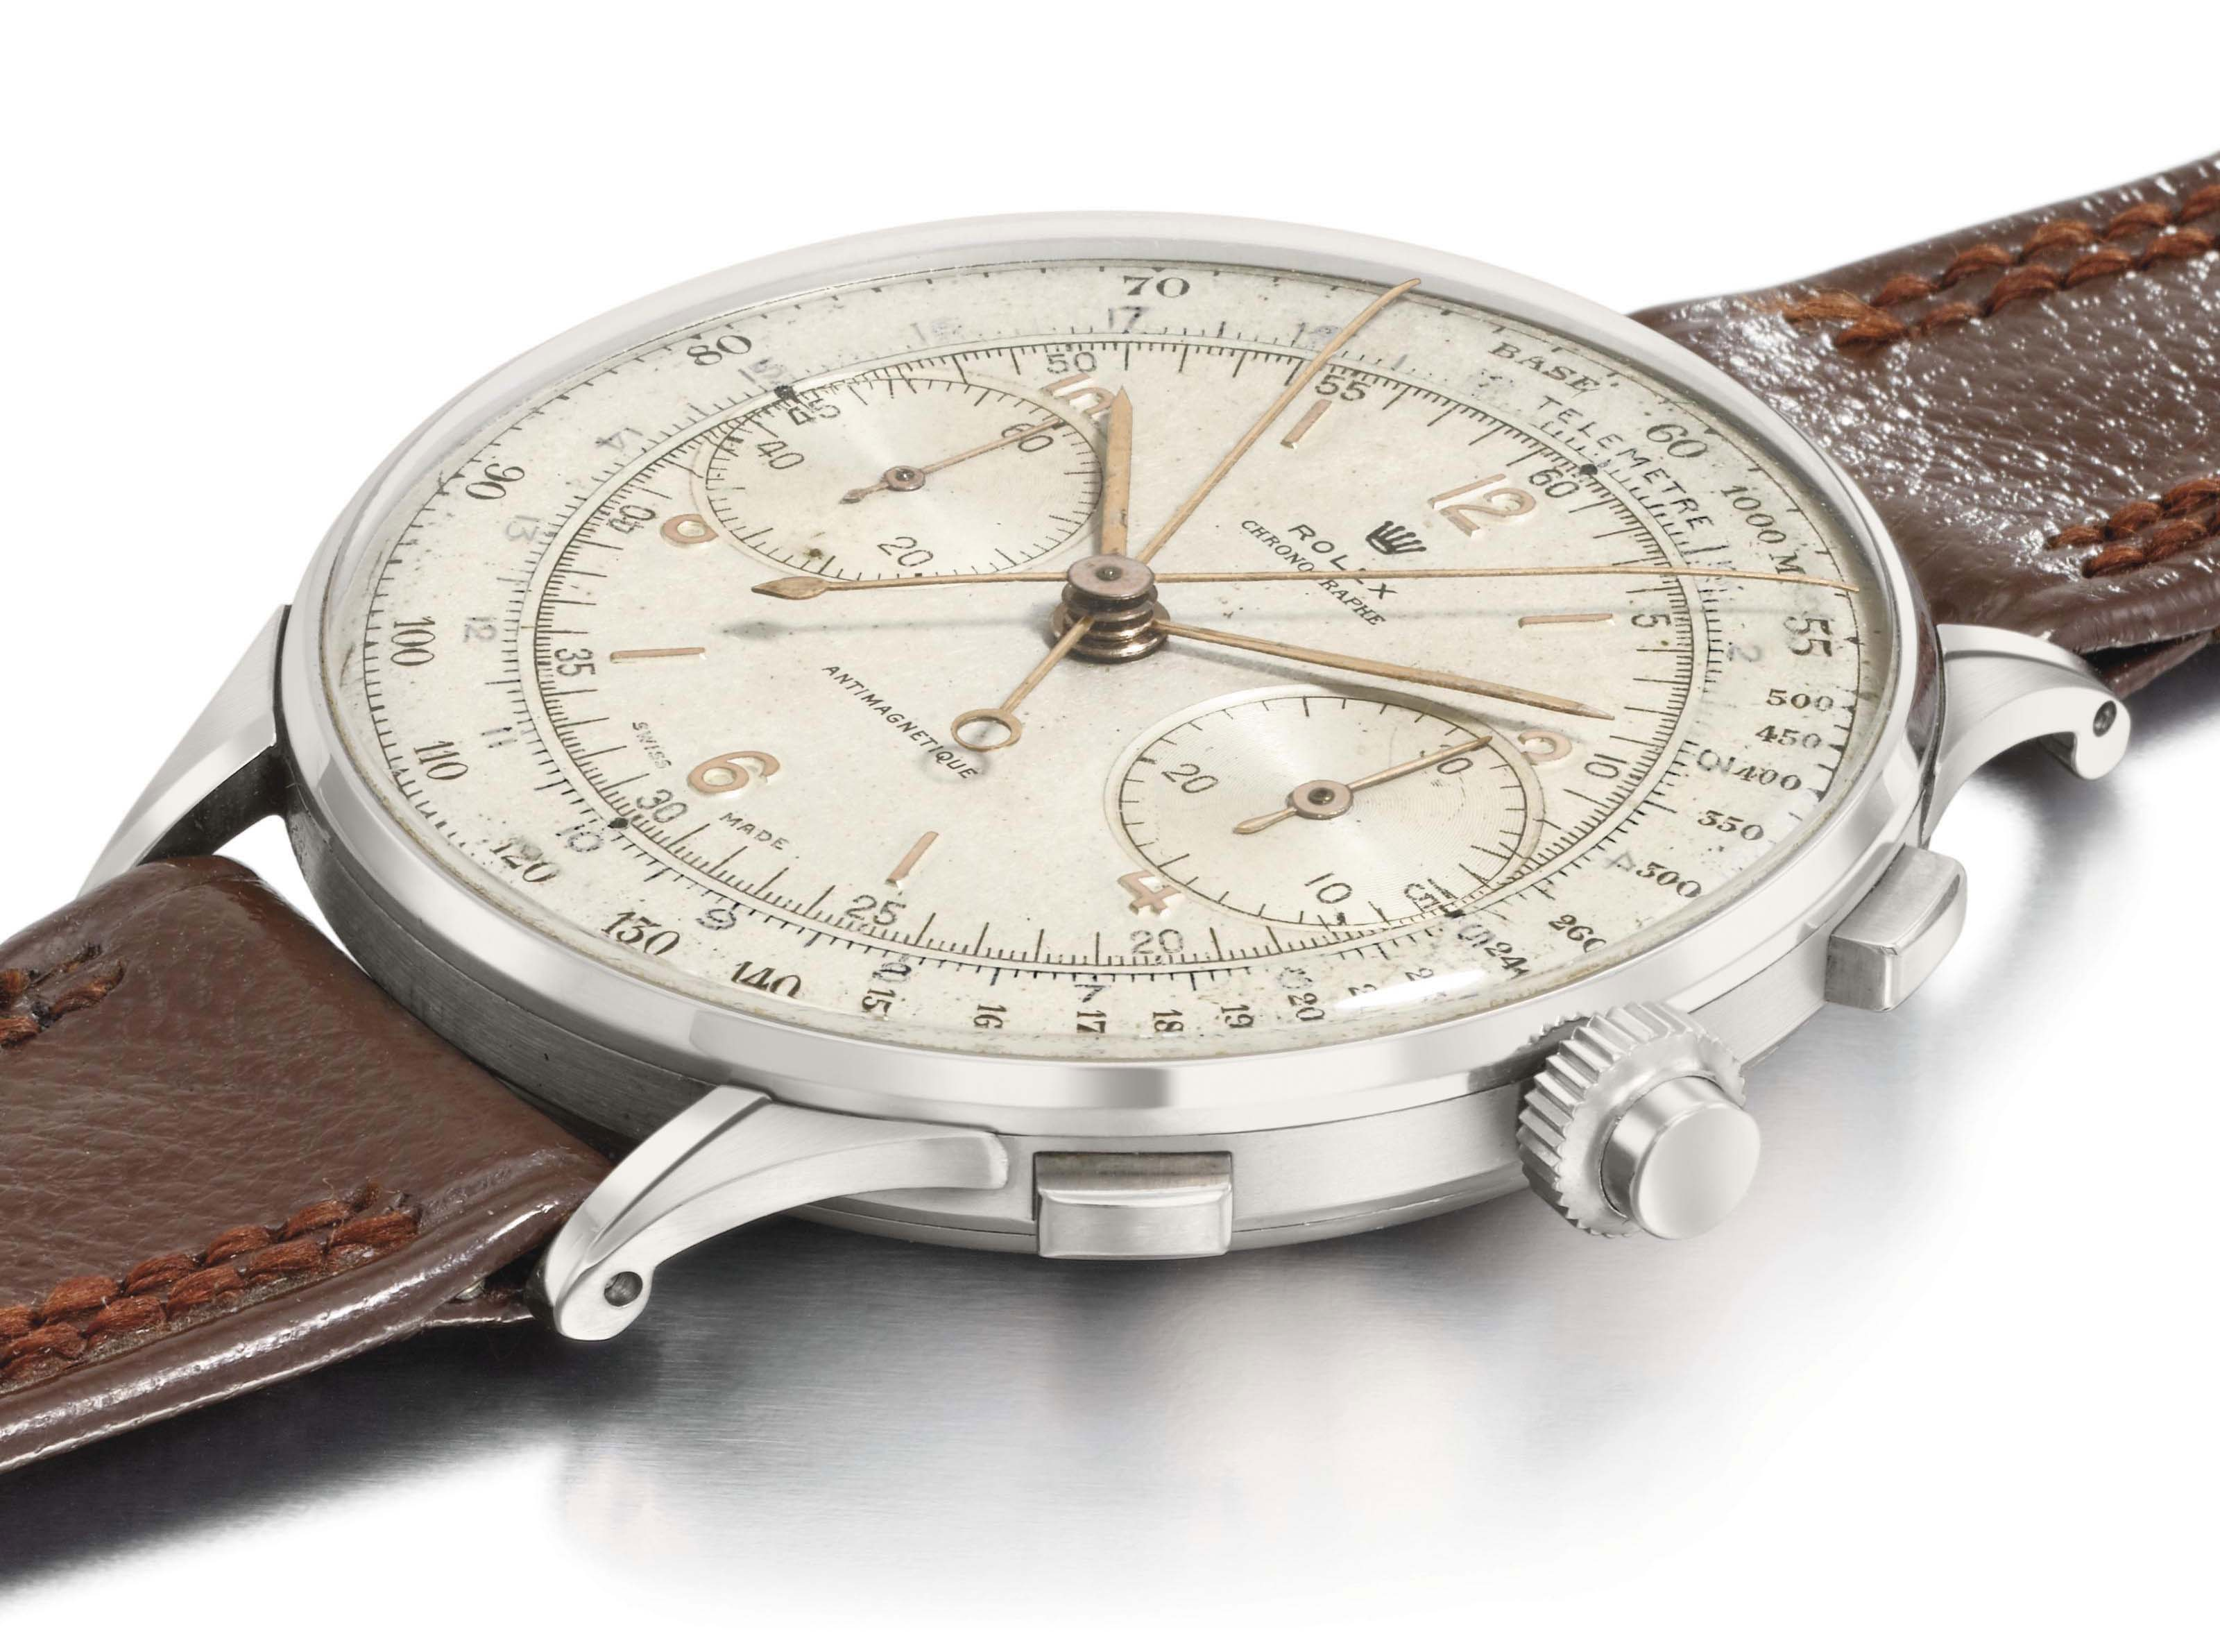 Rolex. An extraordinarily rare, oversized stainless steel split seconds chronograph wristwatch